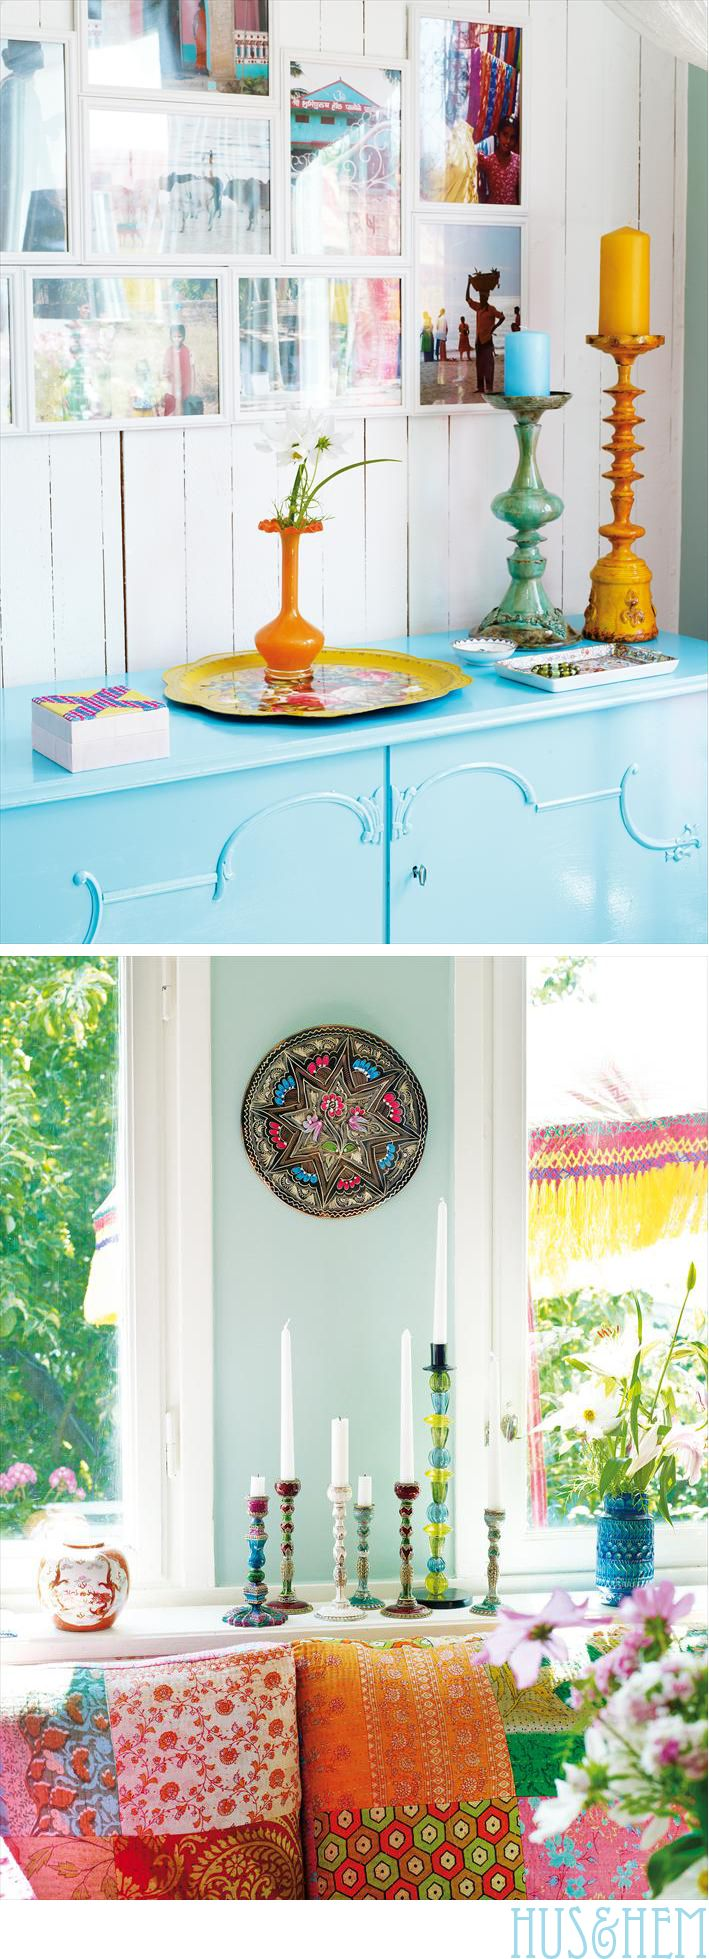 Colourful Home STyle: Colourful Home STyle @Tamlyn Willard - thought of you!